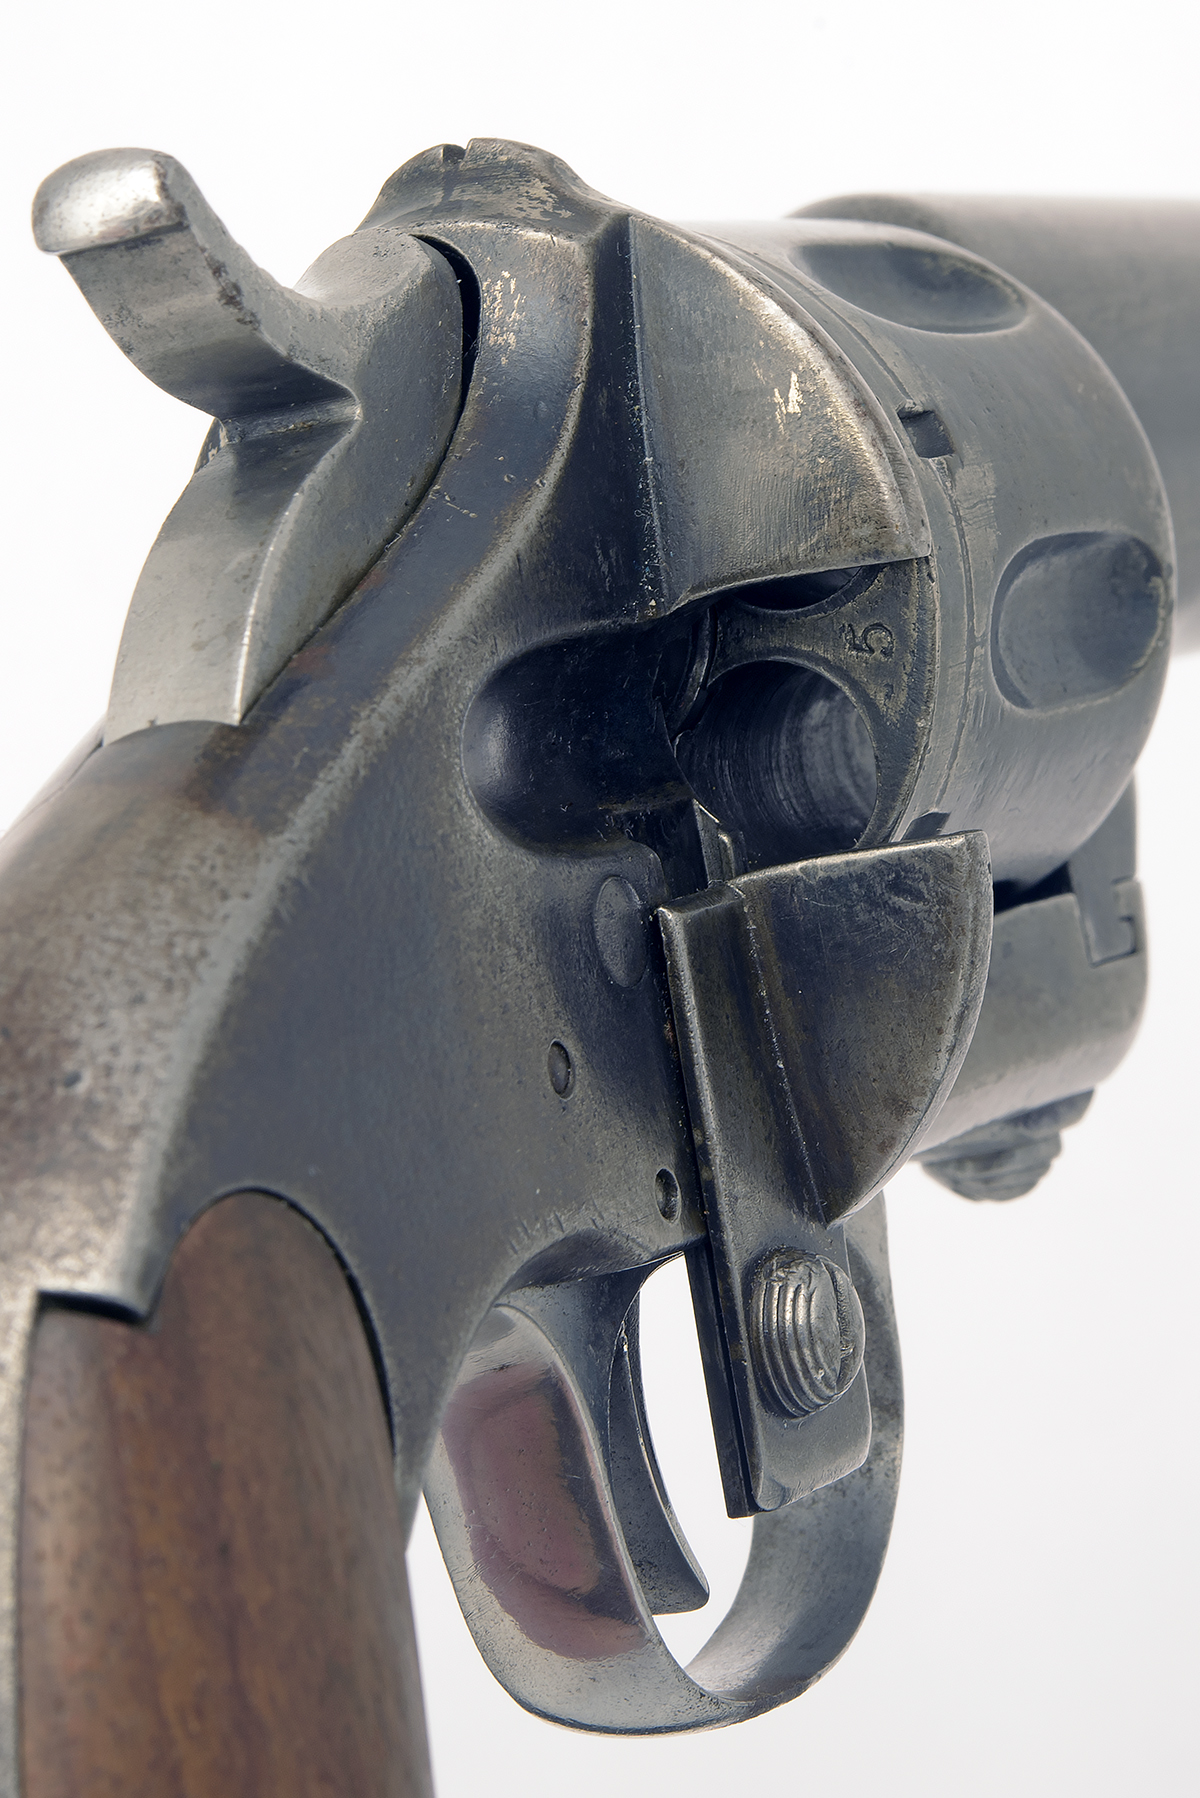 MERWIN HULBERT, USA A SCARCE .44 (M&H) SIX-SHOT SINGLE-ACTION REVOLVER MODEL 'ARMY, FIRST ISSUE', - Image 3 of 3